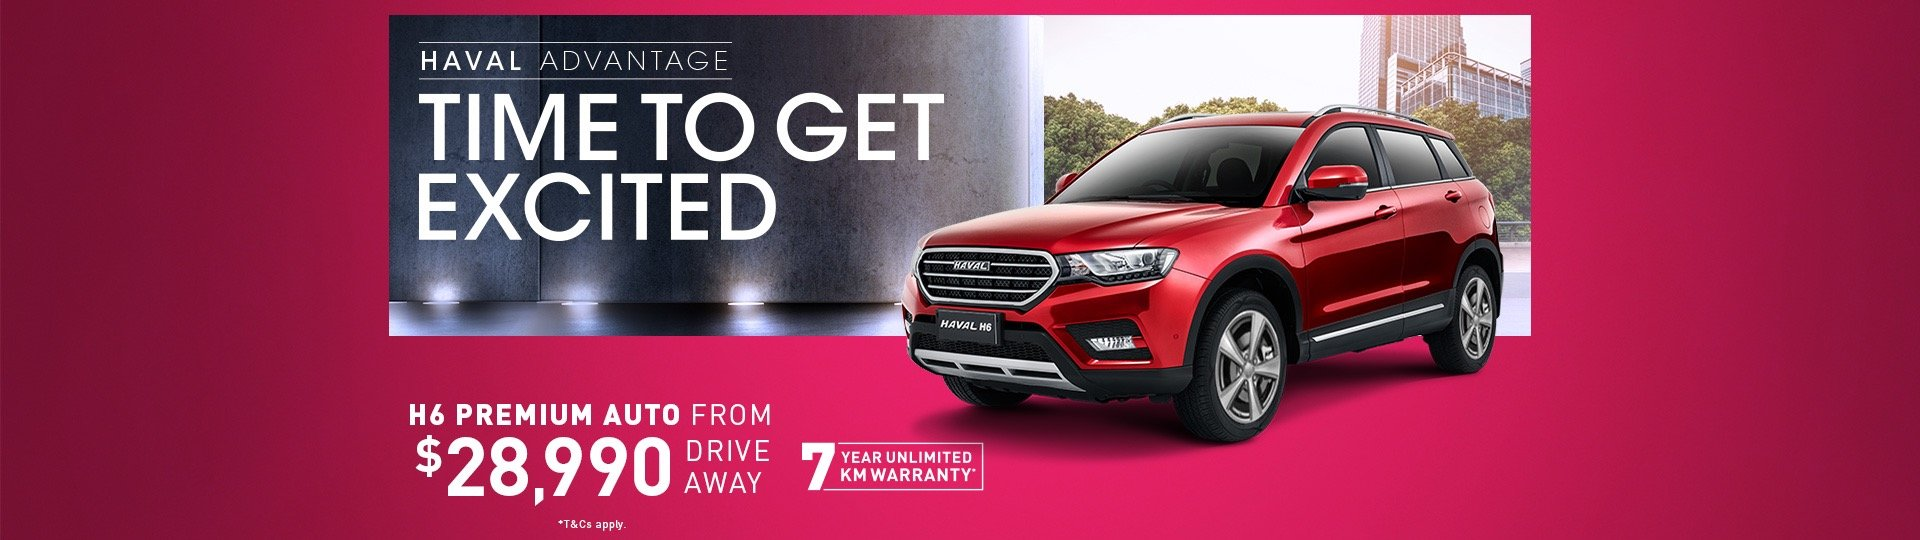 Haval H6 from $28,990 driveaway